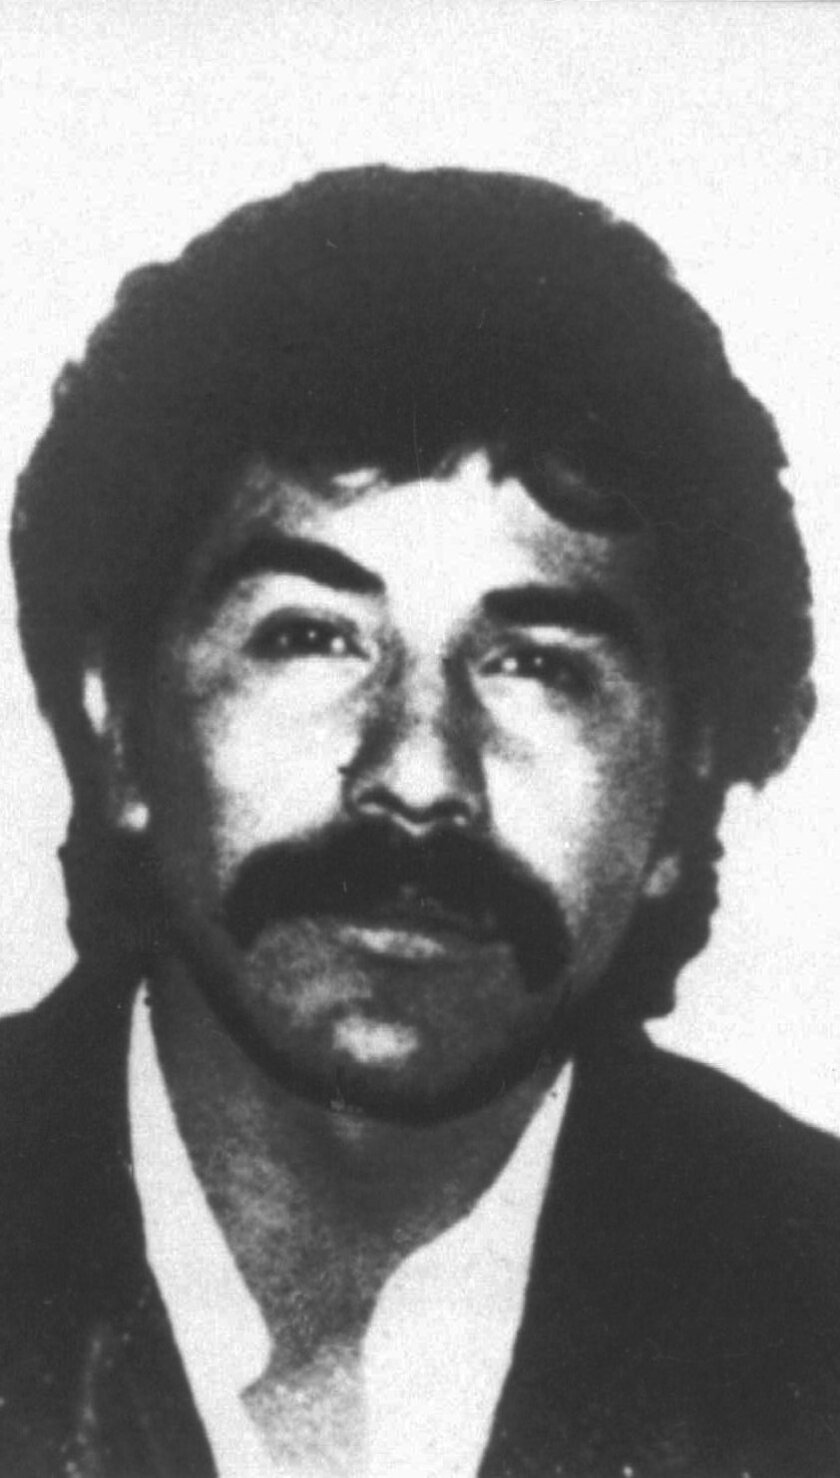 CORRECTS DATE OF ANNOUNCEMENT - FILE - This undated file photo provided by Mexico's government shows drug lord Rafael Caro Quintero in an unknown location. Chihuahua Attorney General Jorge Gonzalez told reporters on Tuesday, July 5, 2016 that the old-guard drug lord mistakenly released in 2013 is a